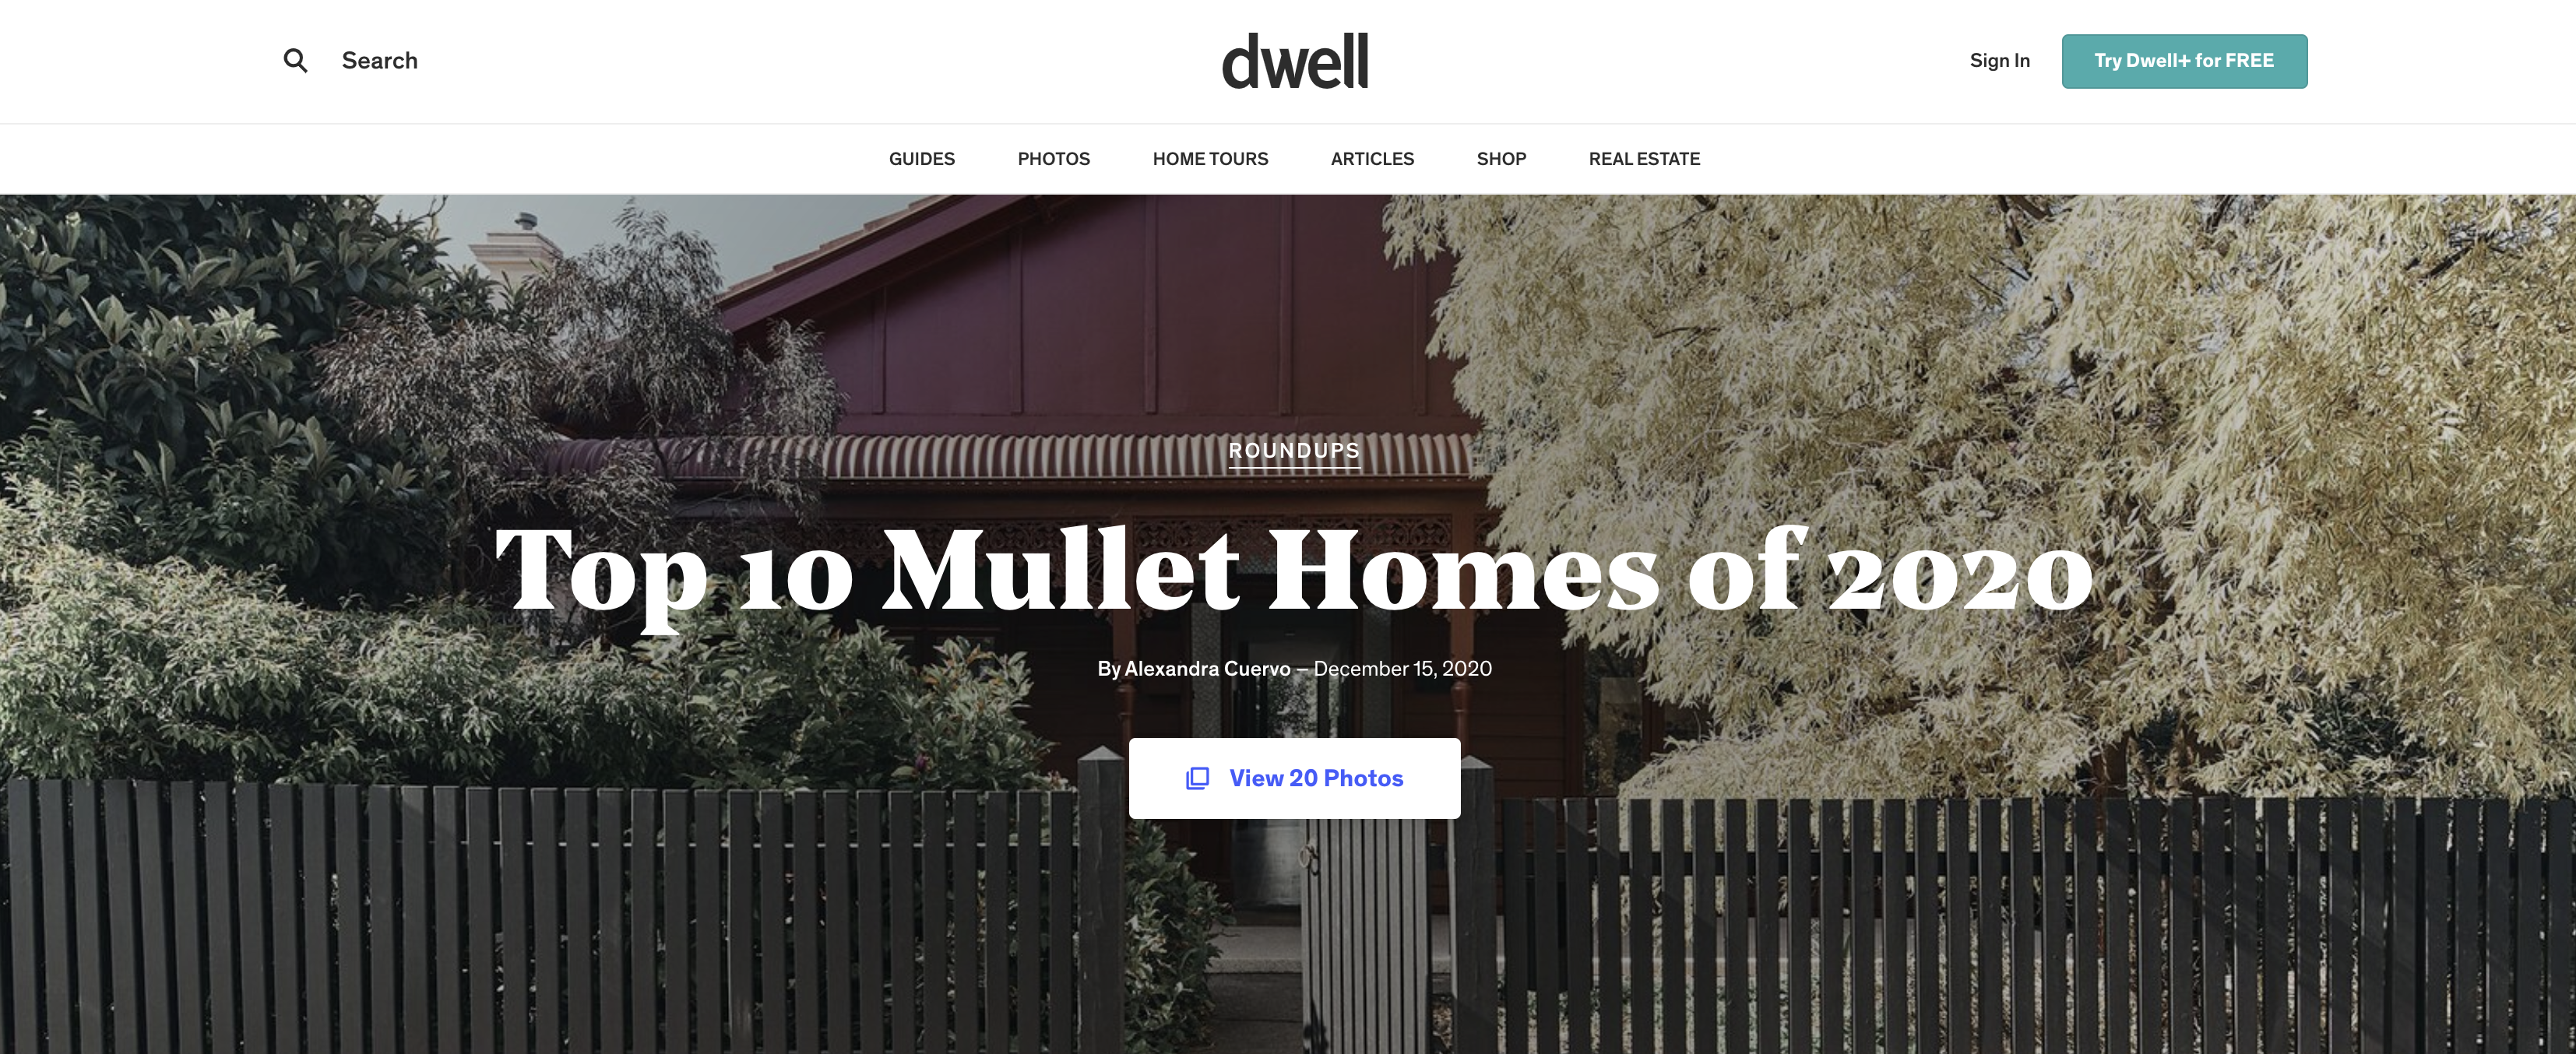 Top 10 Mullet Homes of 2020